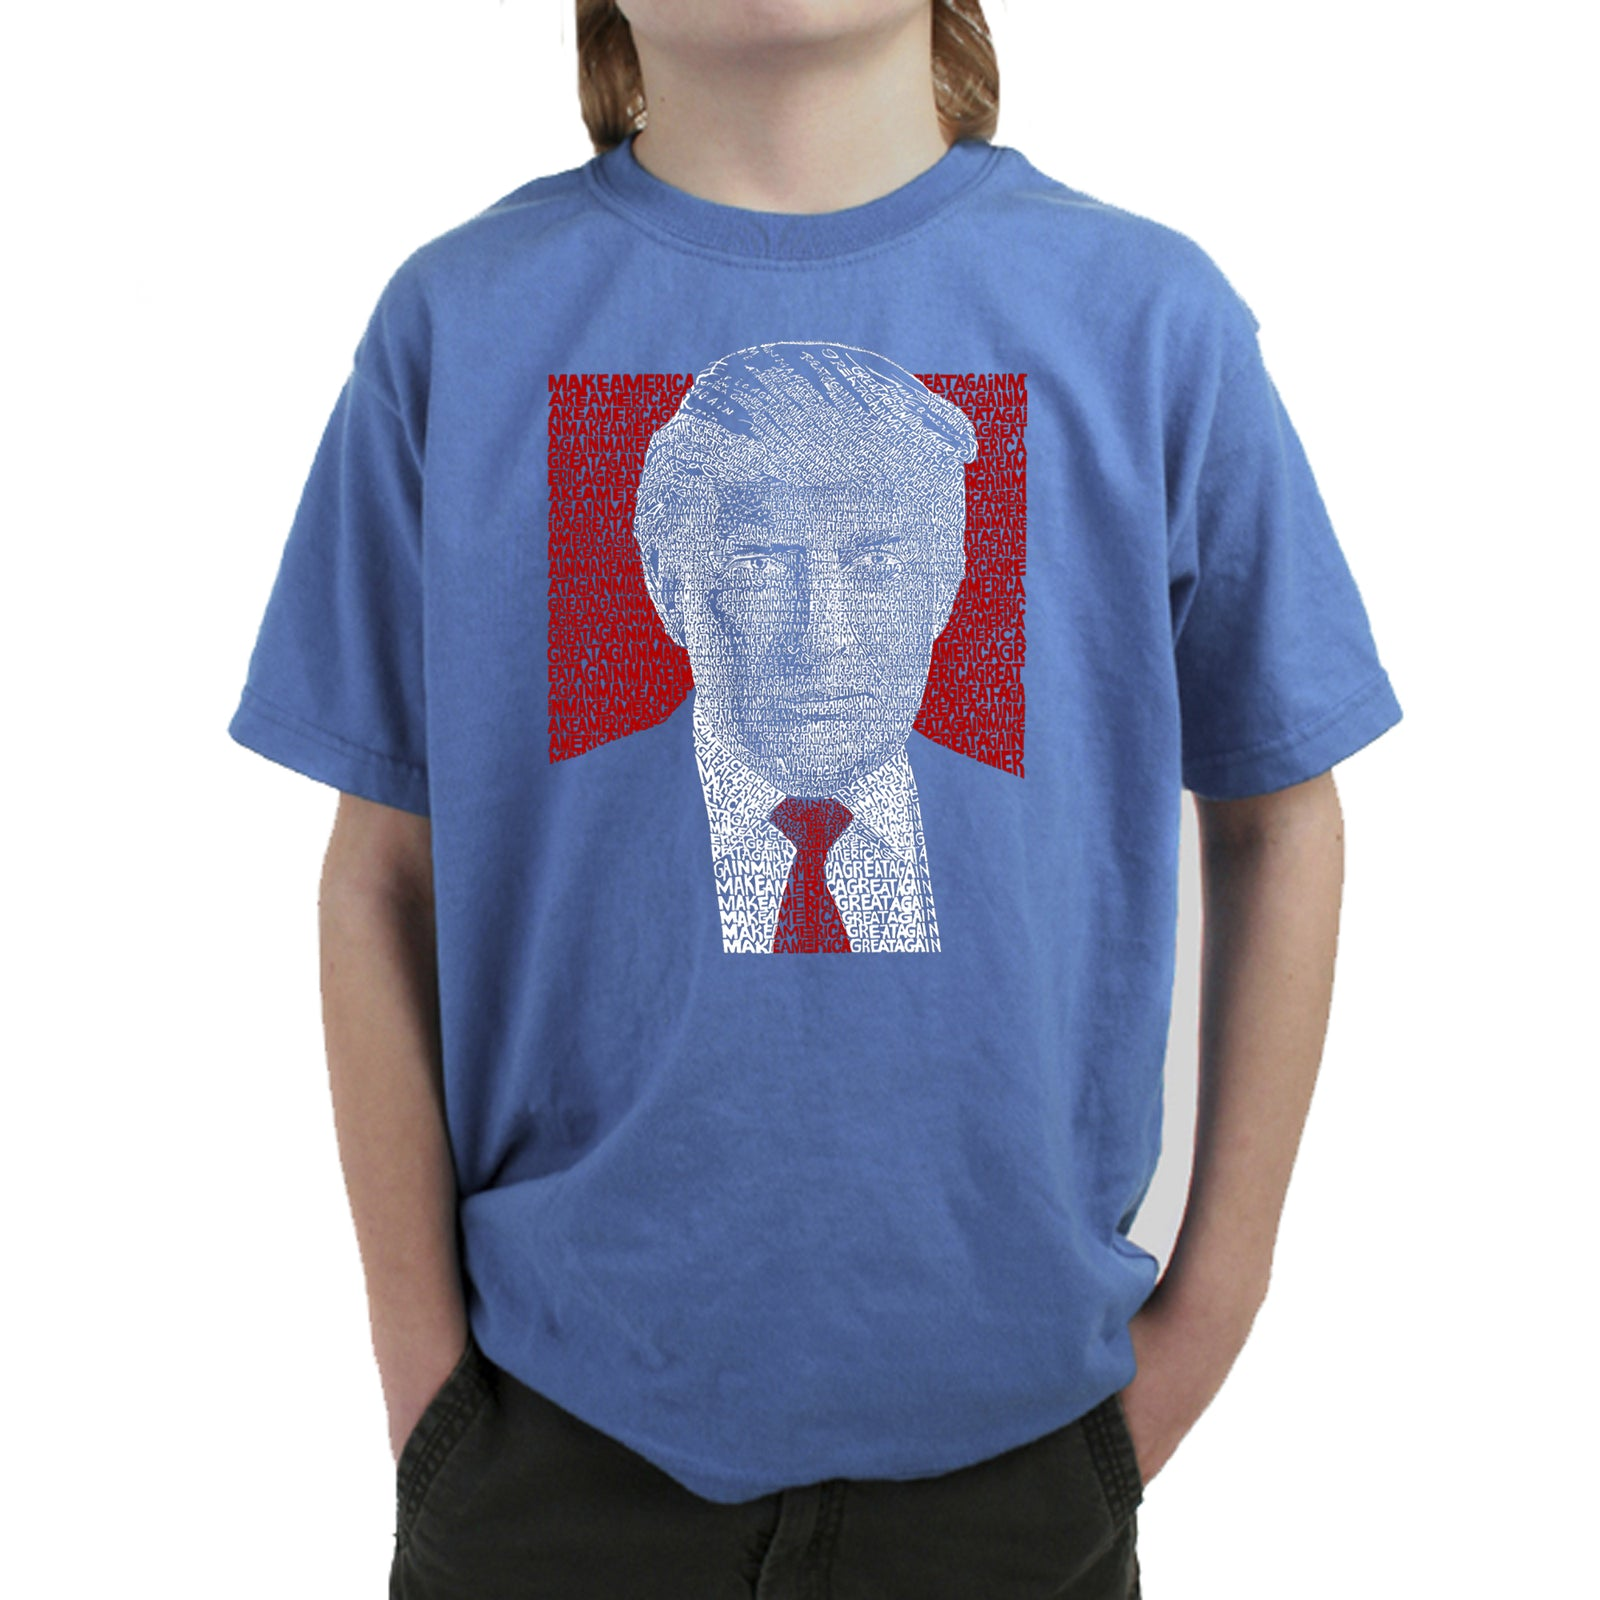 Boy's T-shirt - TRUMP 2016 - Make America Great Again